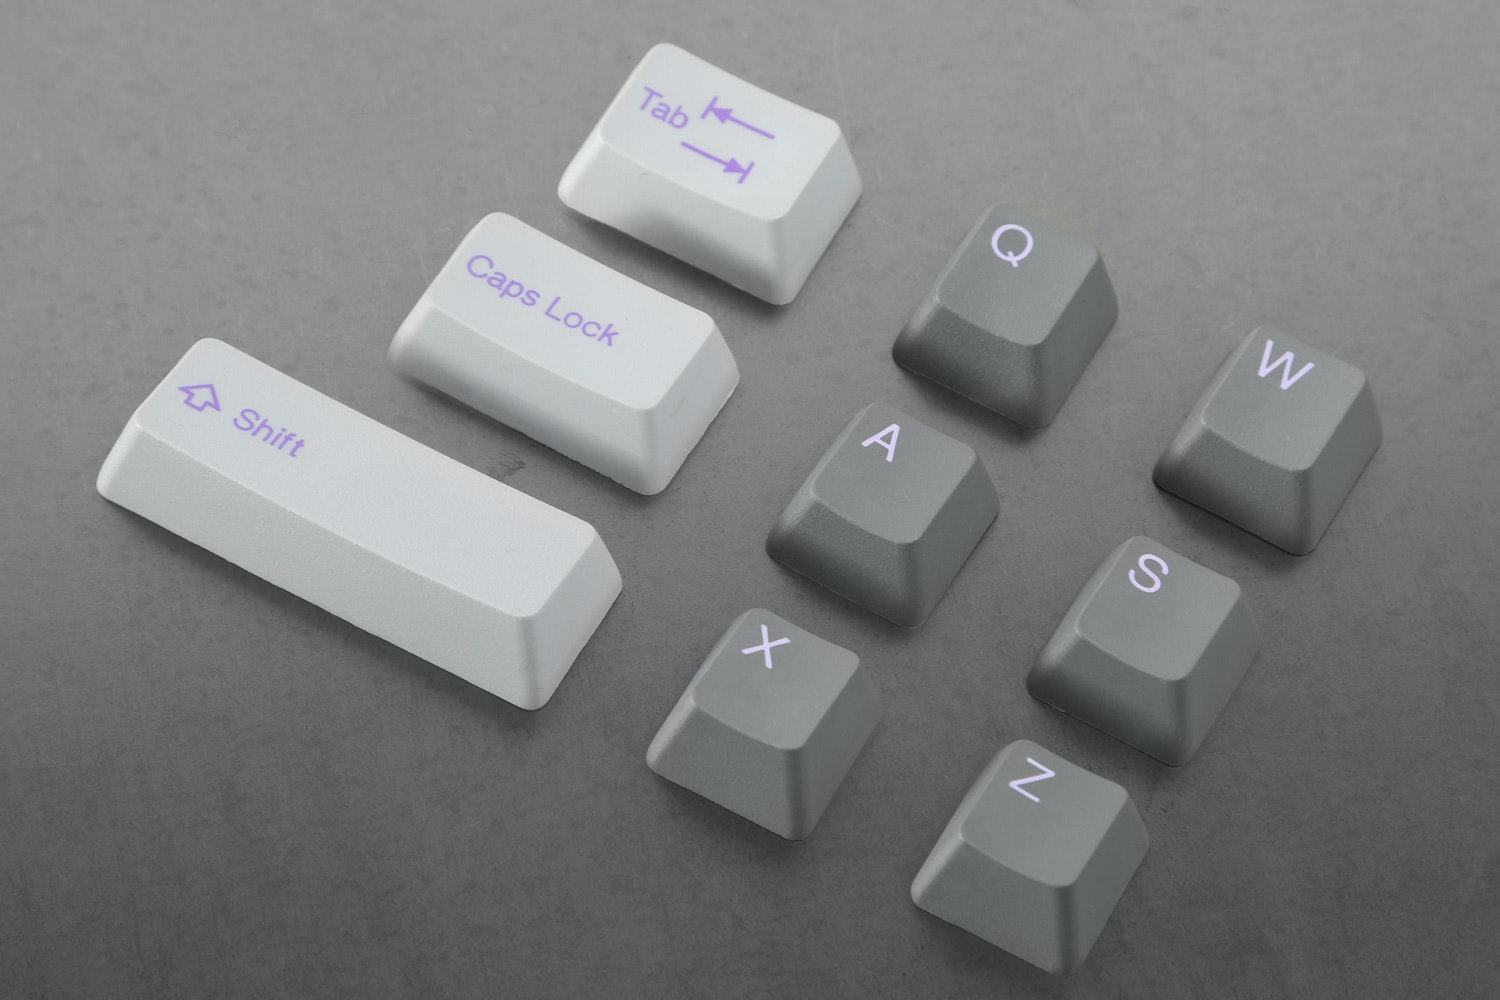 Slate/Lilac alpha keys with Cement/Lavender modifier keys